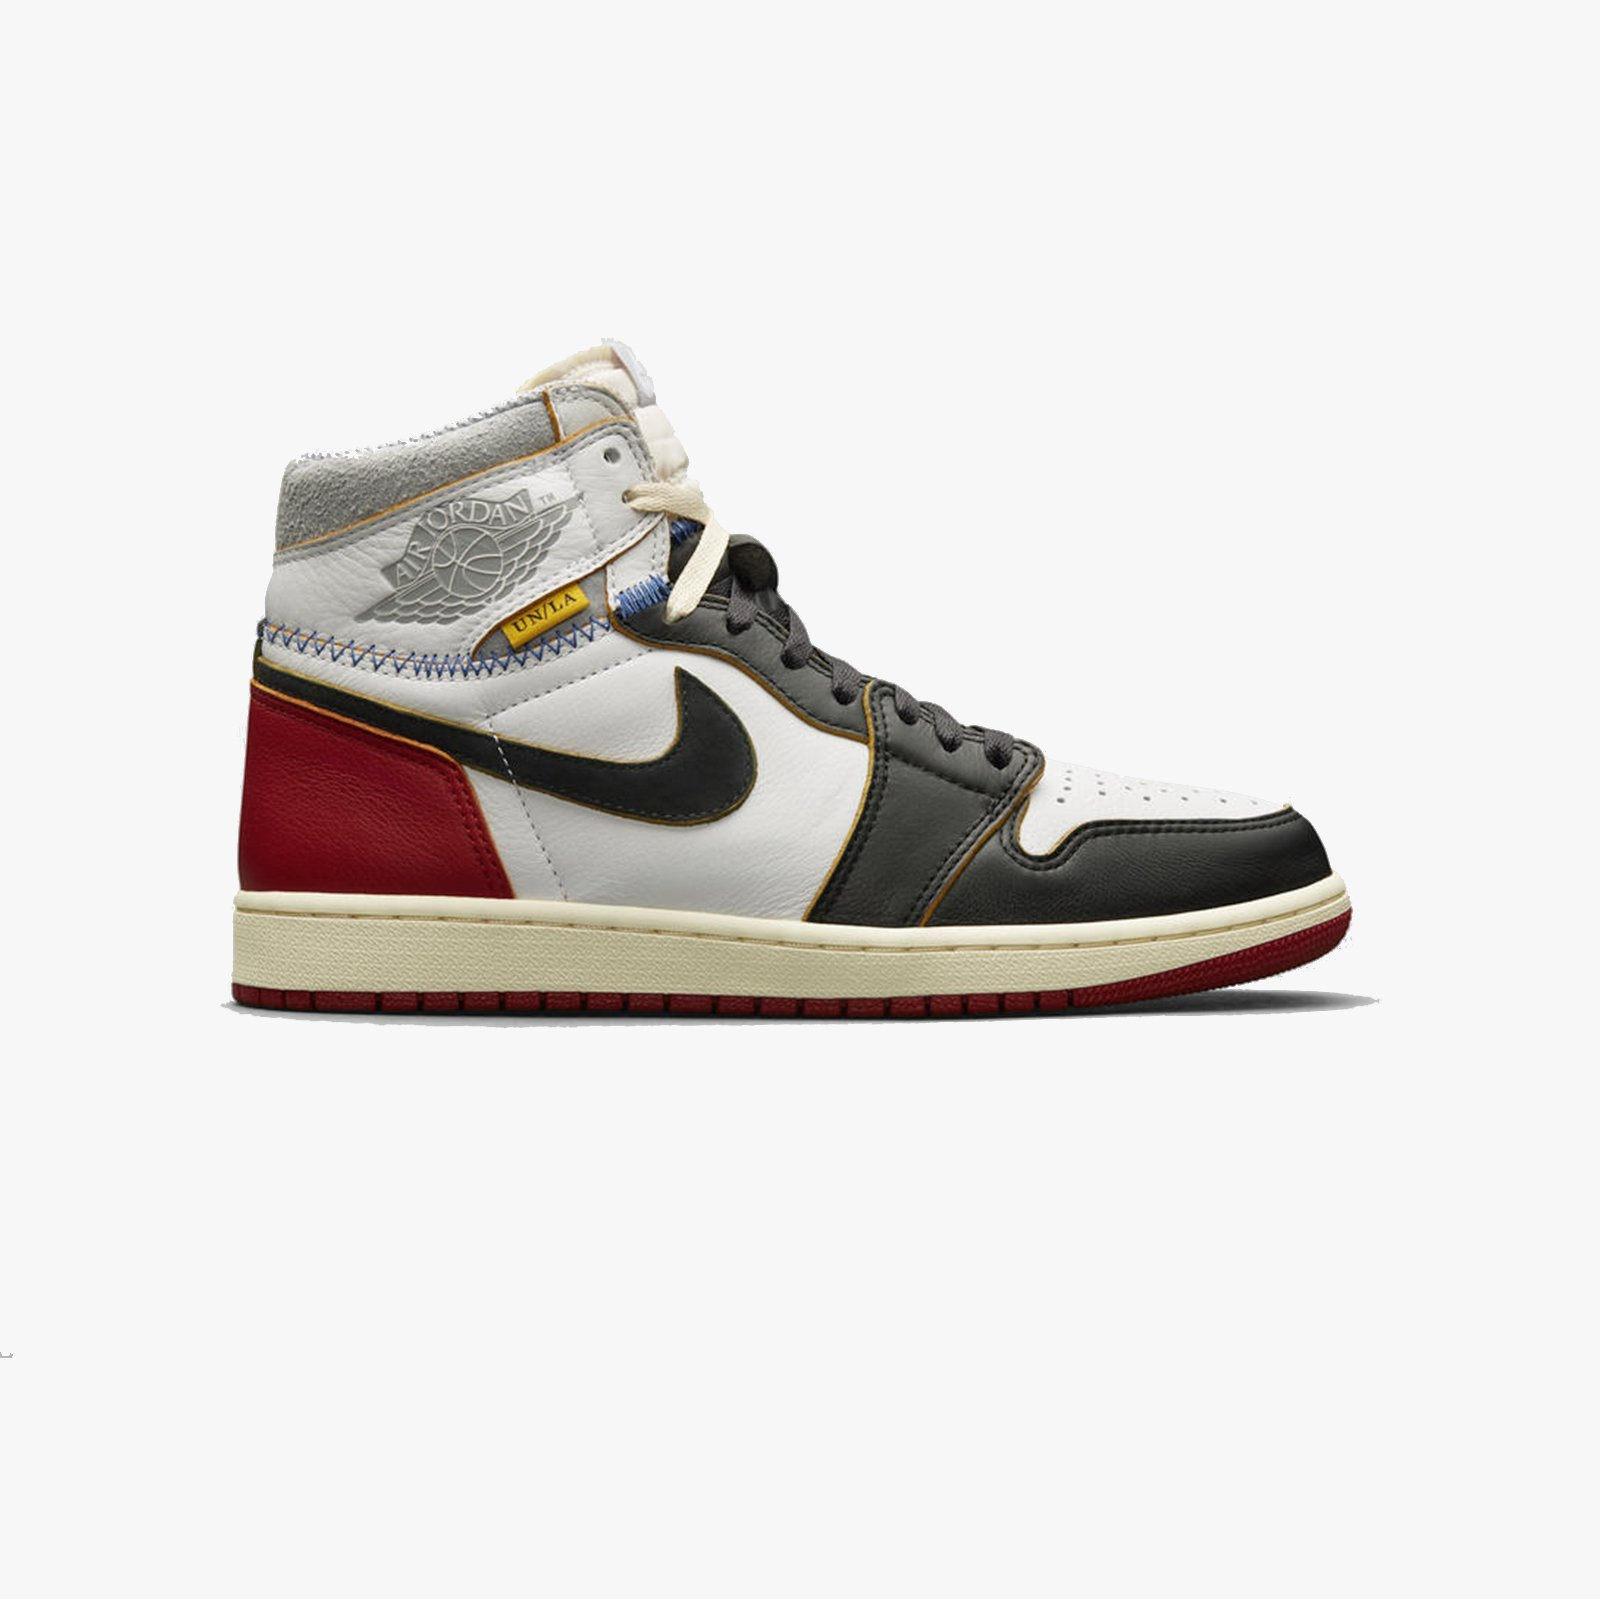 official photos db33d 1c286 Jordan Brand Air Jordan 1 Retro Hi NRG / Union - Bv1300-106 ...